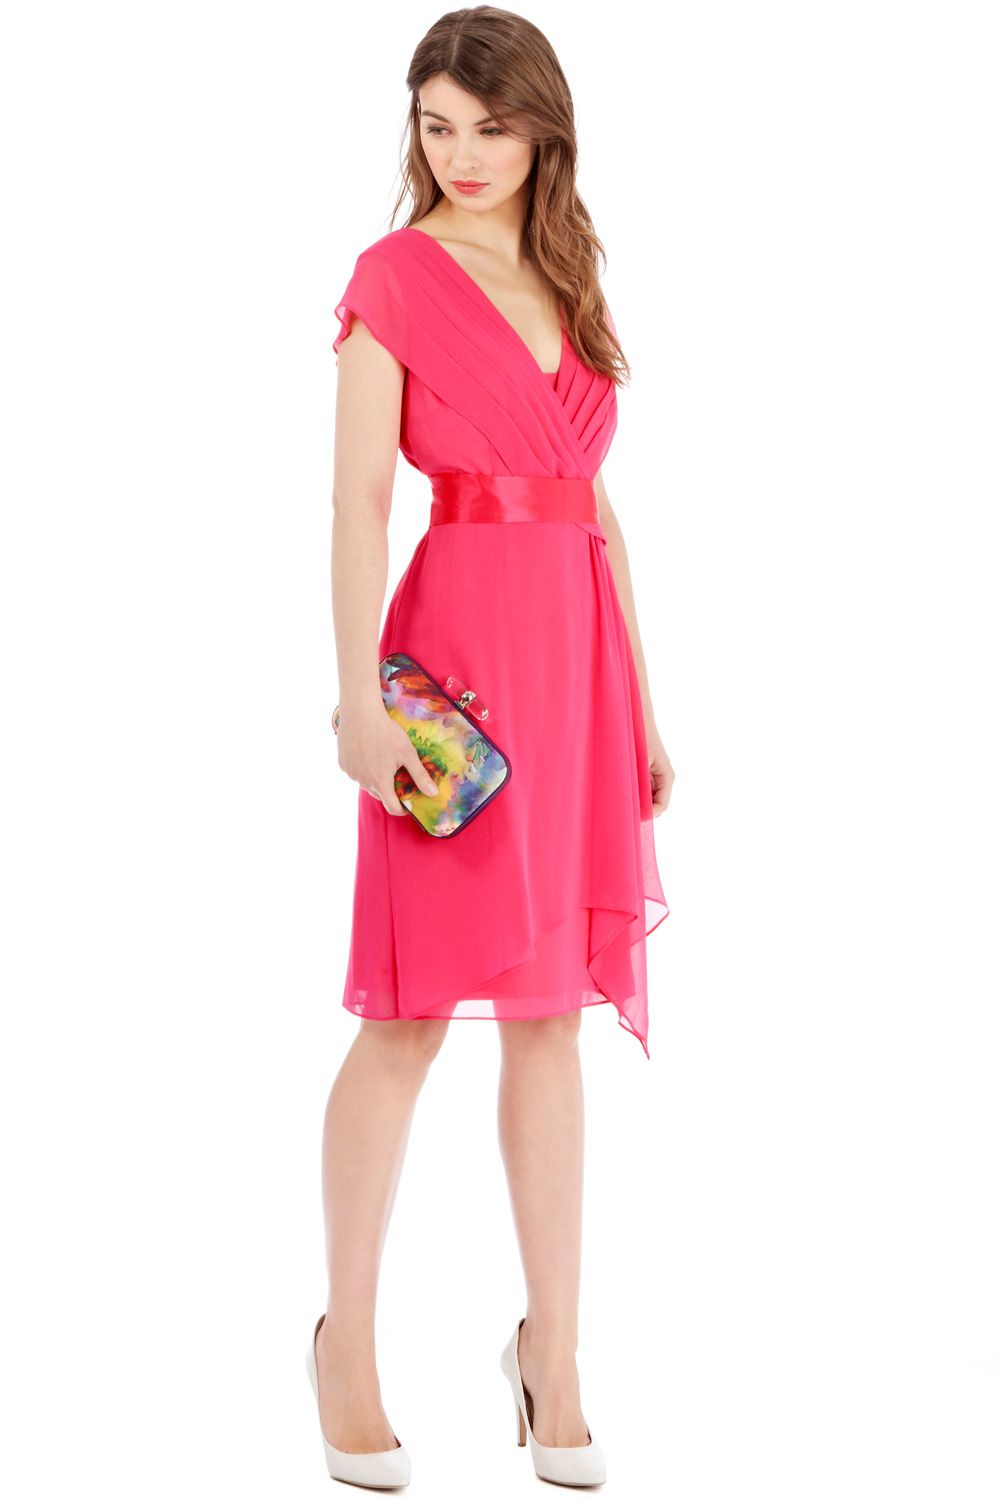 Make a playful addition to your wardrobe with this vibrant hot ...